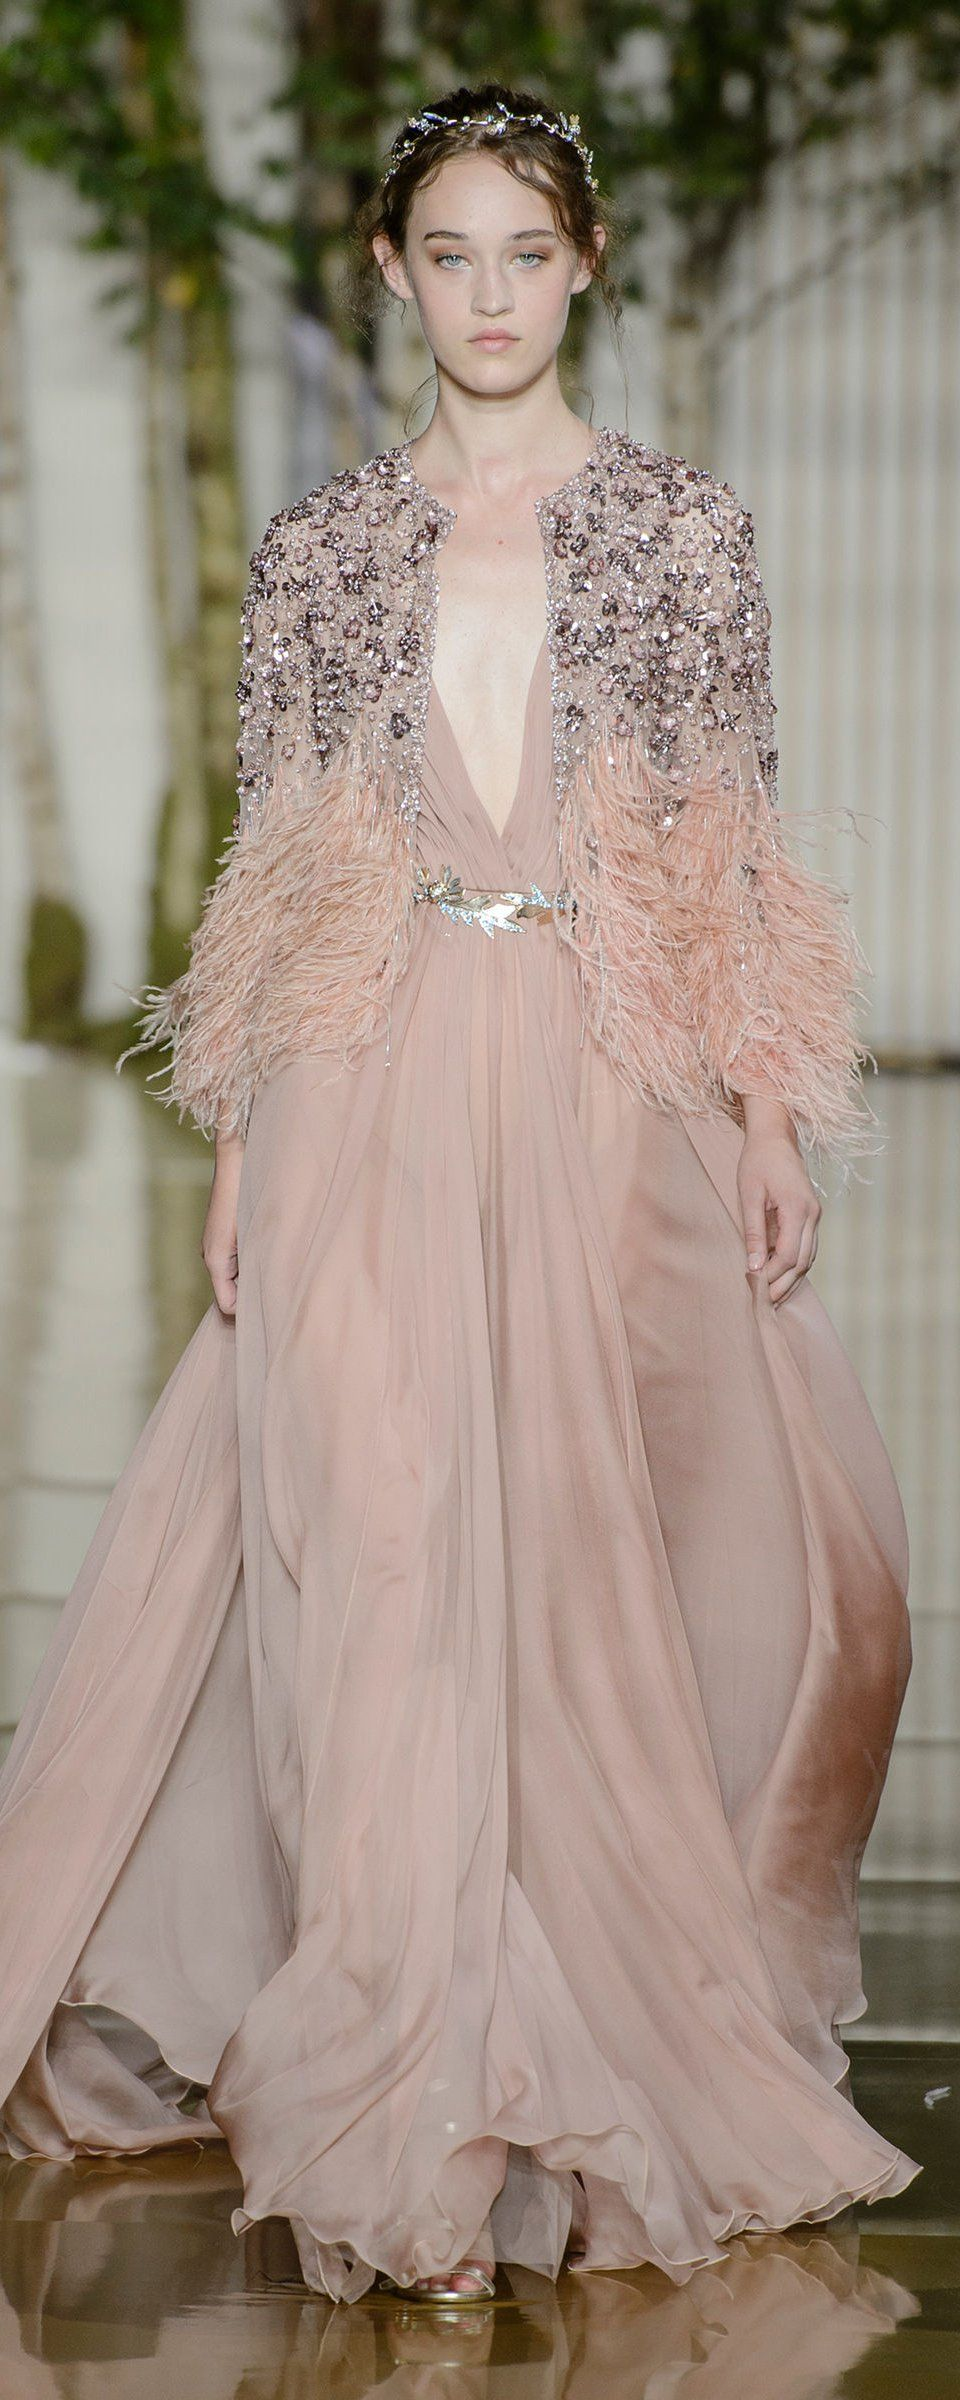 Zuhair murad fallwinter couture zuhair murad winter